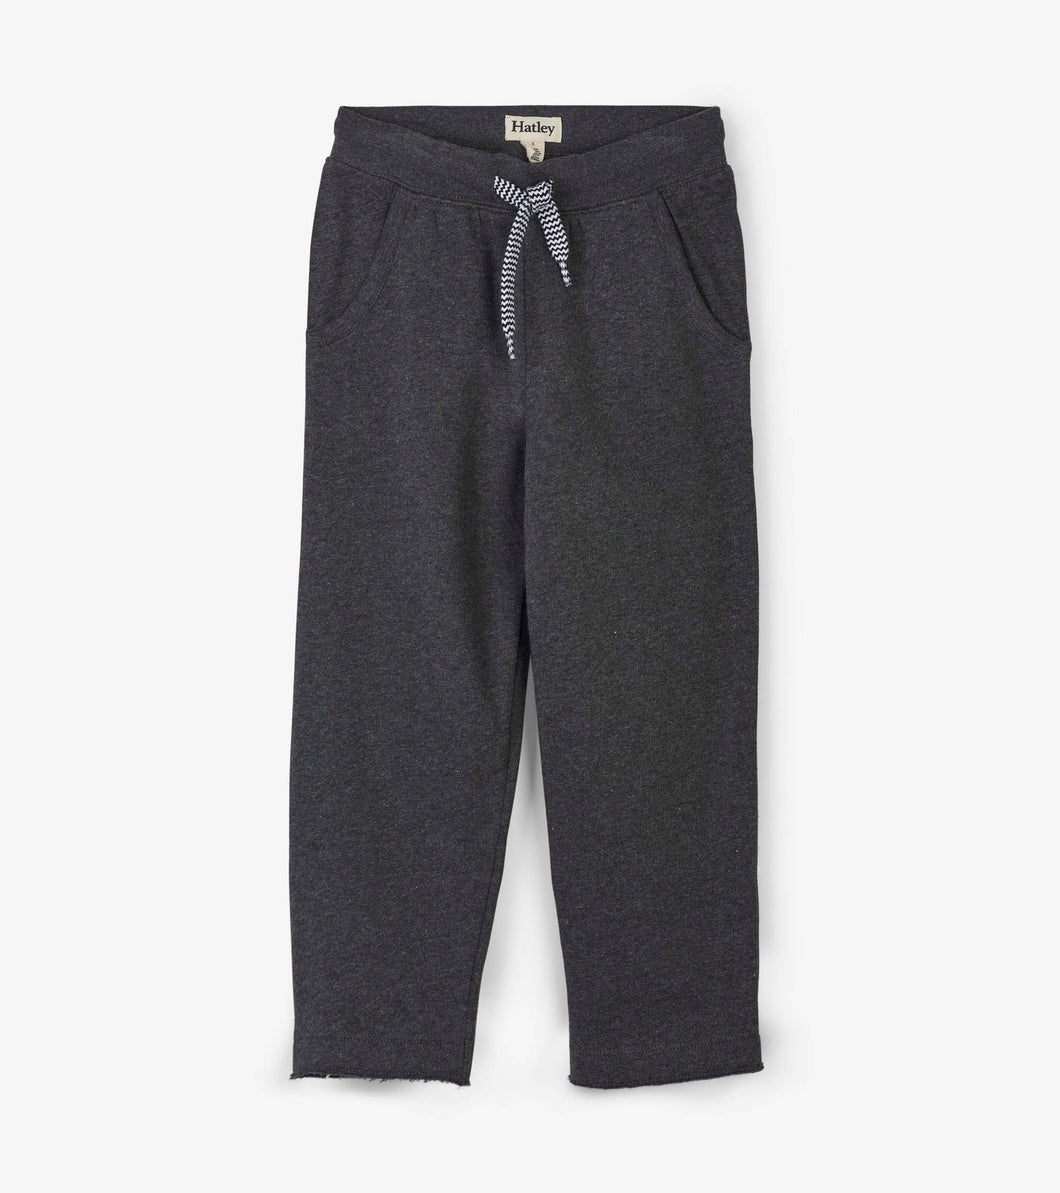 Hatley moonshadow fleece track pant